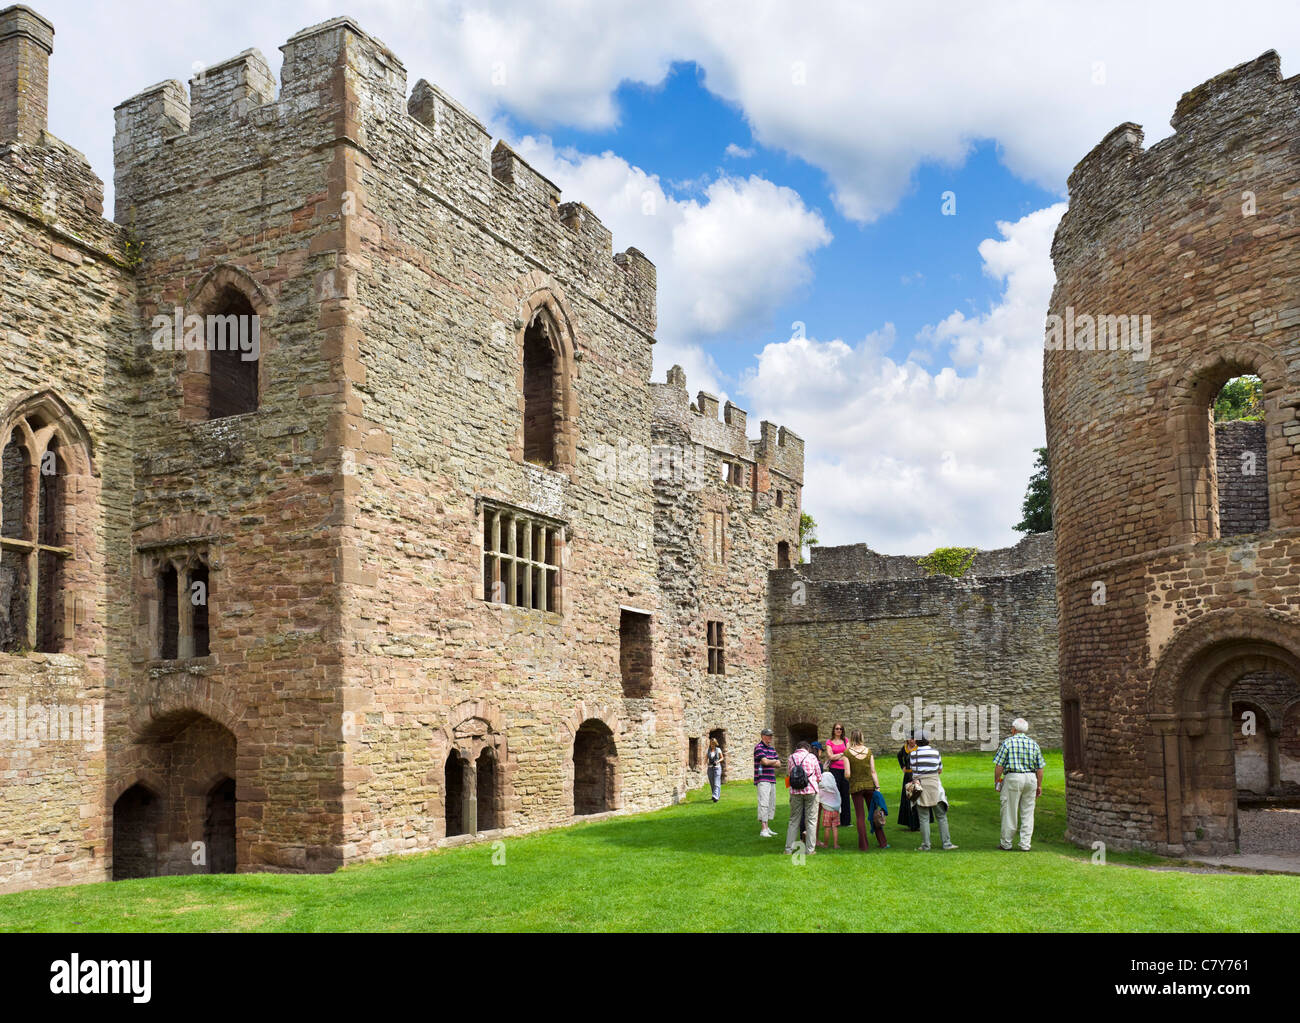 Party of tourists in the ruins of Ludlow Castle, Ludlow, Shropshire, England, UK - Stock Image